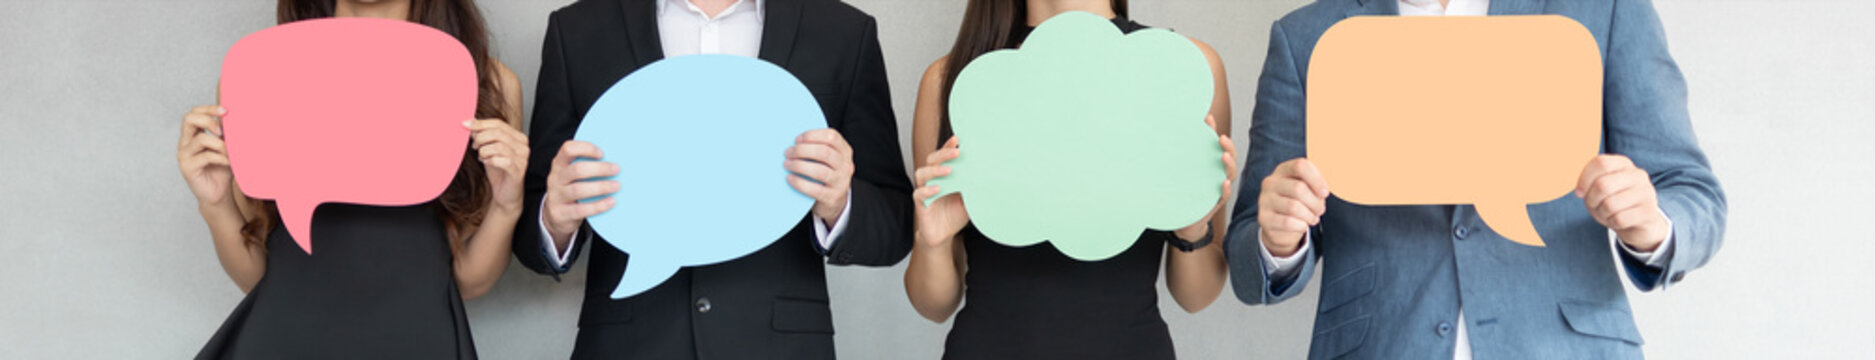 People are holding colorful Speech Bubbles.